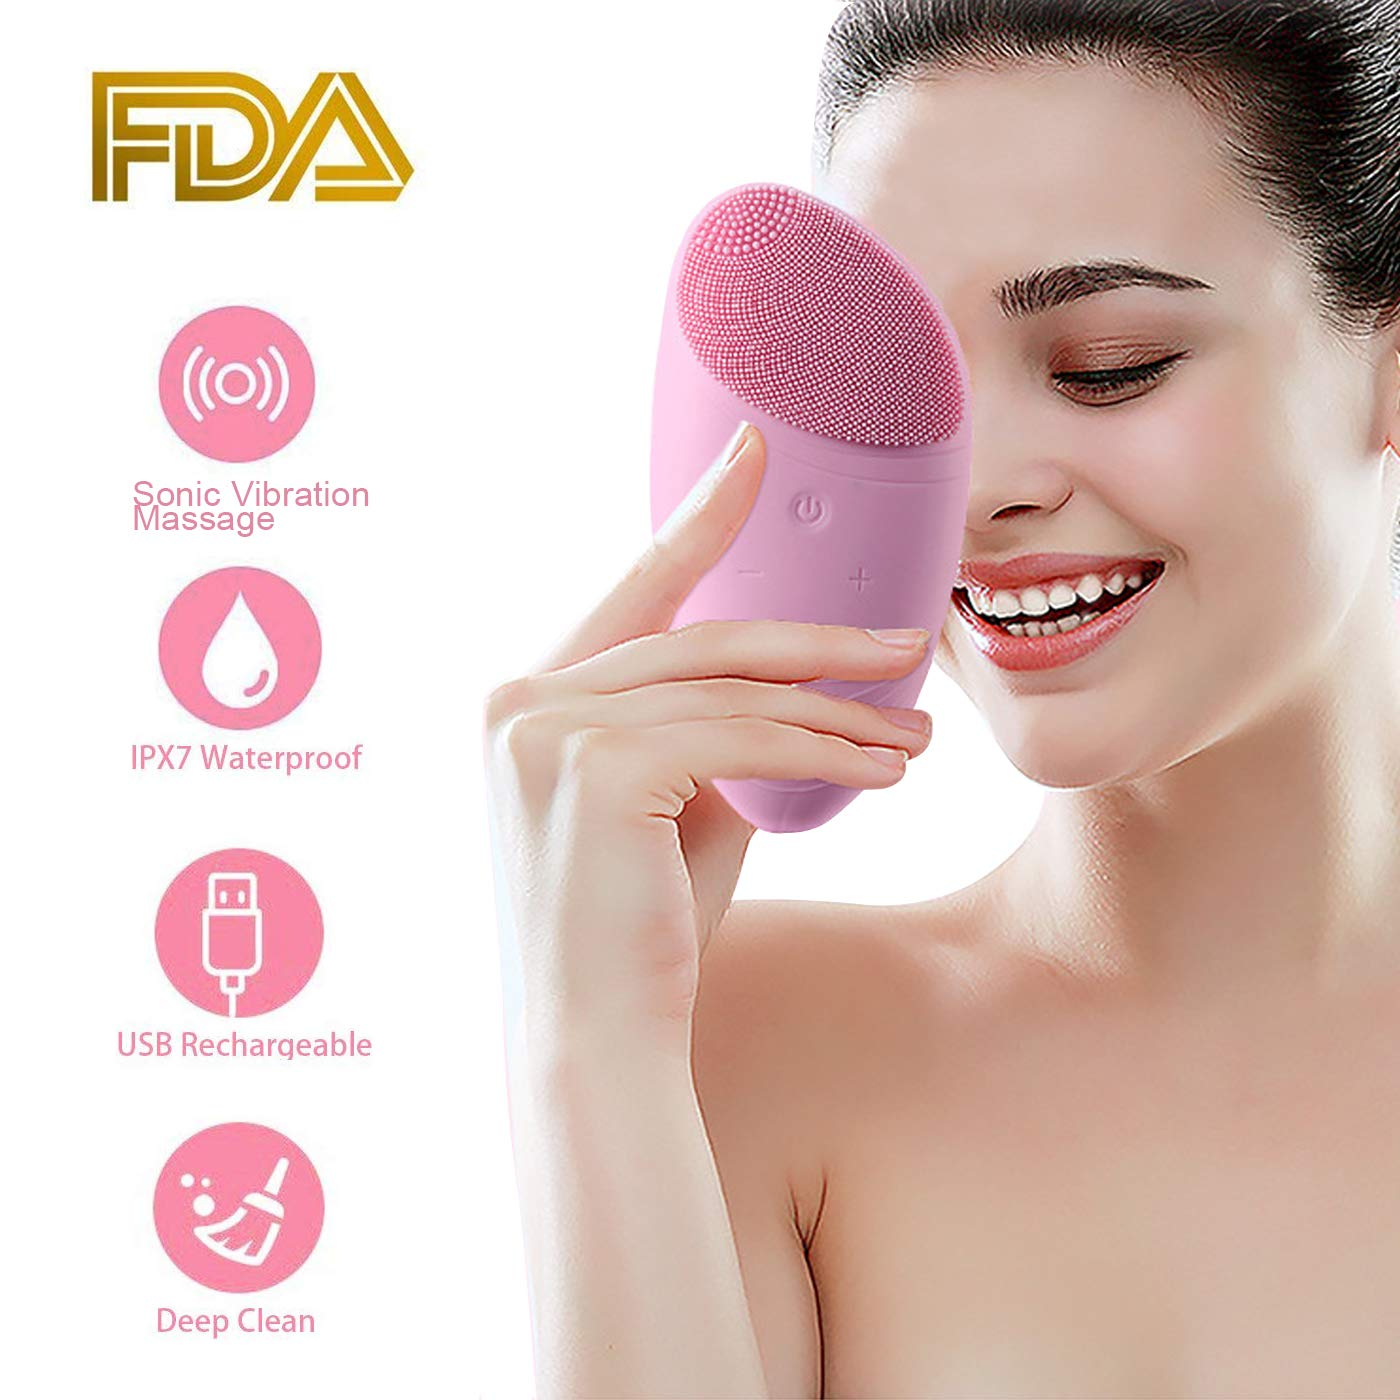 OPPSARE Deep Facial Cleansing Brush Rechargeable Waterproof - Gentle Sonic Face Cleaner - Anti-Aging Skin Care Face Massager - Exfoliating Pore Minimizer to Smooth Skin Help Reduce Blackheads Acne Dar CoCo100